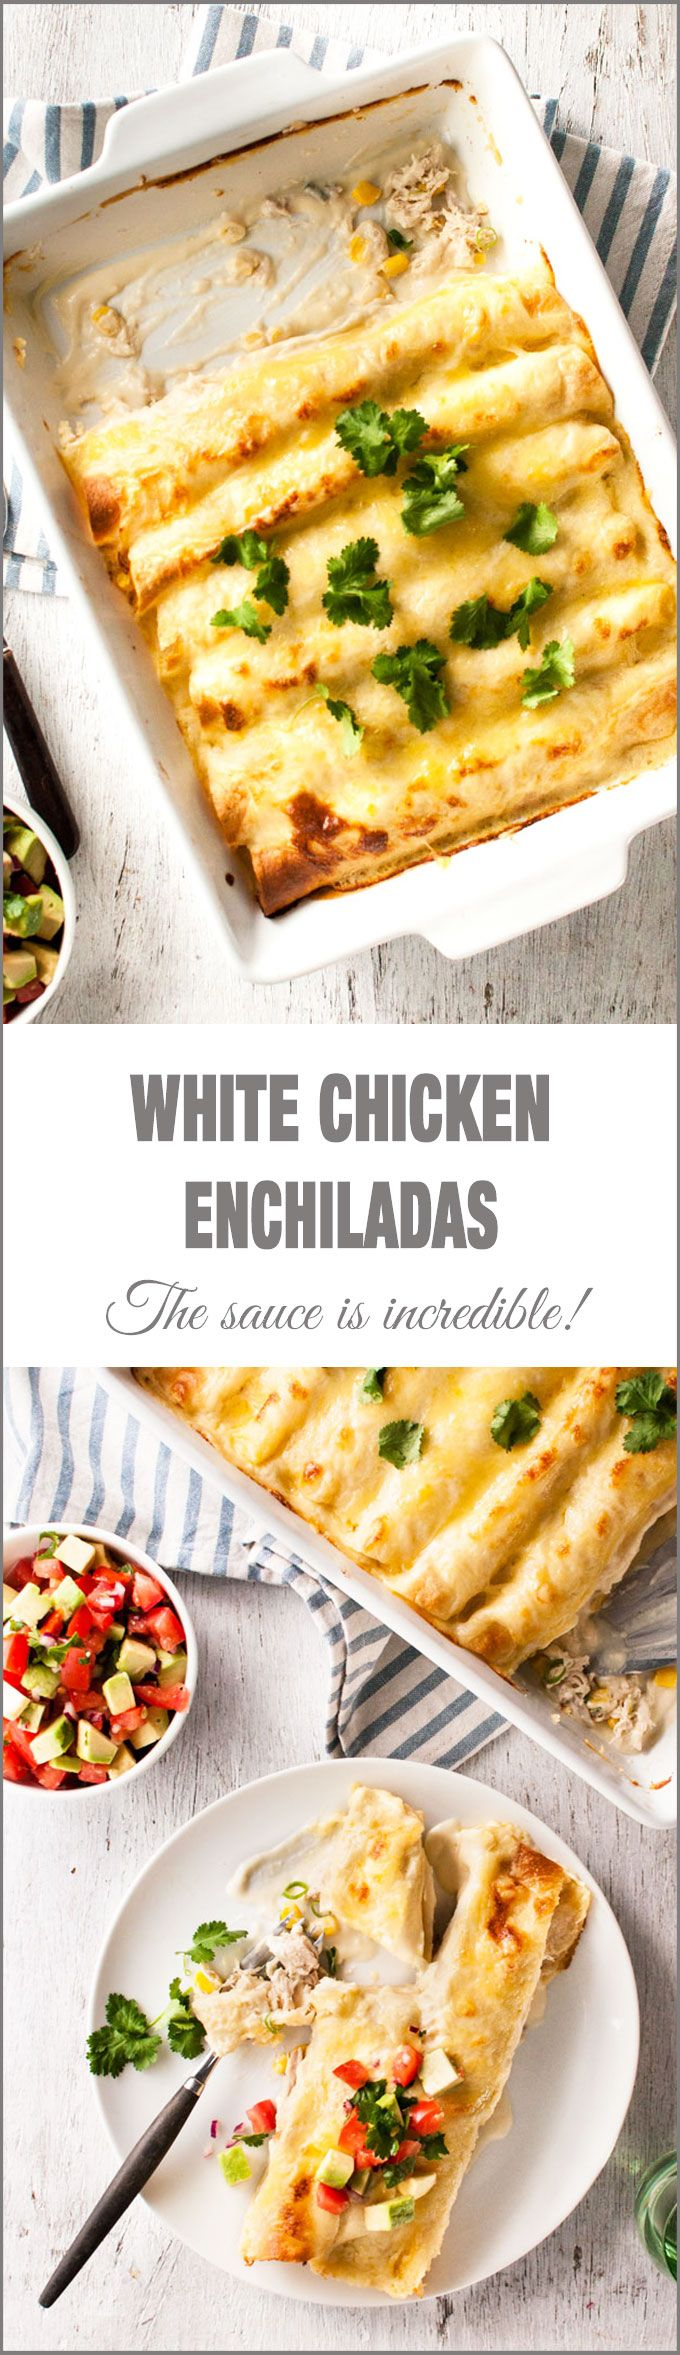 Cheesy white chicken enchiladas that aren't too rich!